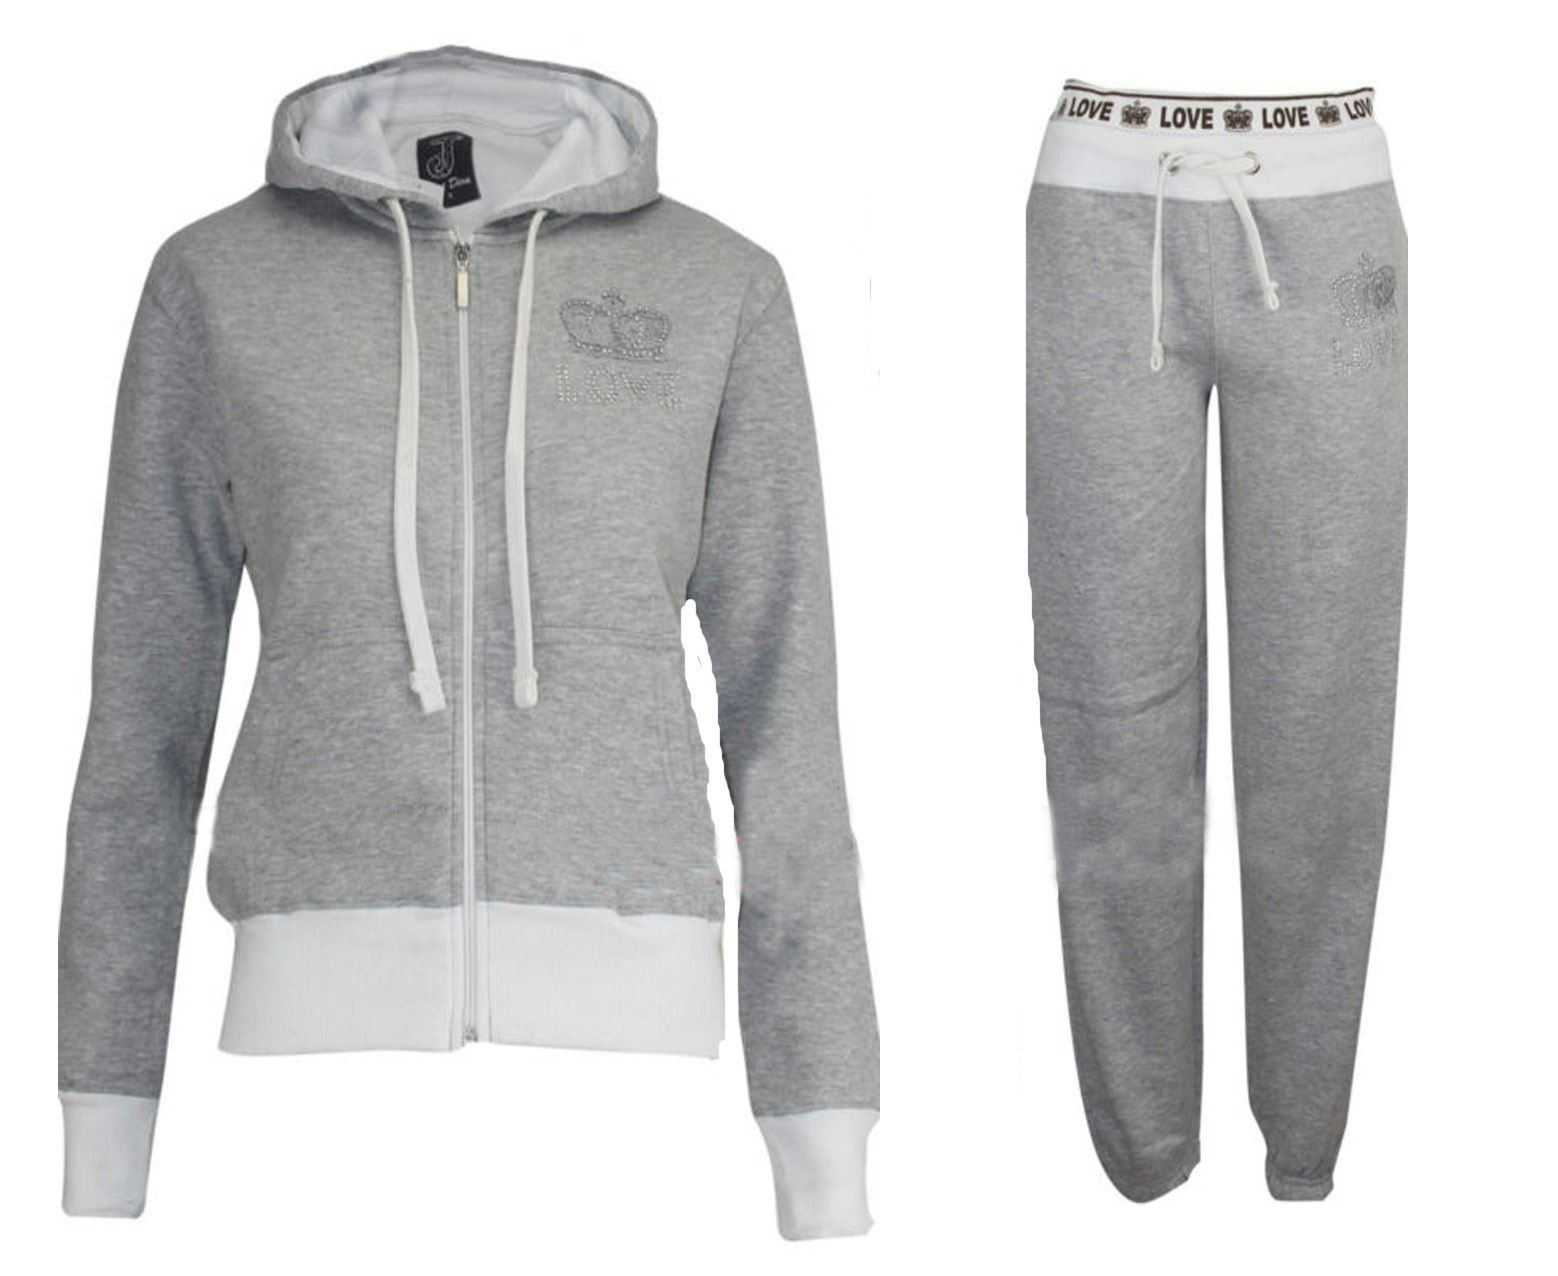 River Island Kids Sports Clothes